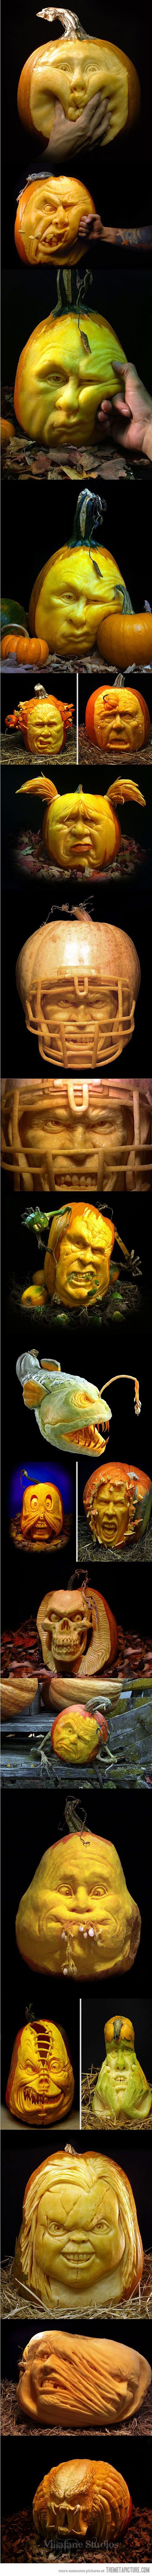 He is the all time best Pumpkin carver.....He is the PUMPKING of all!